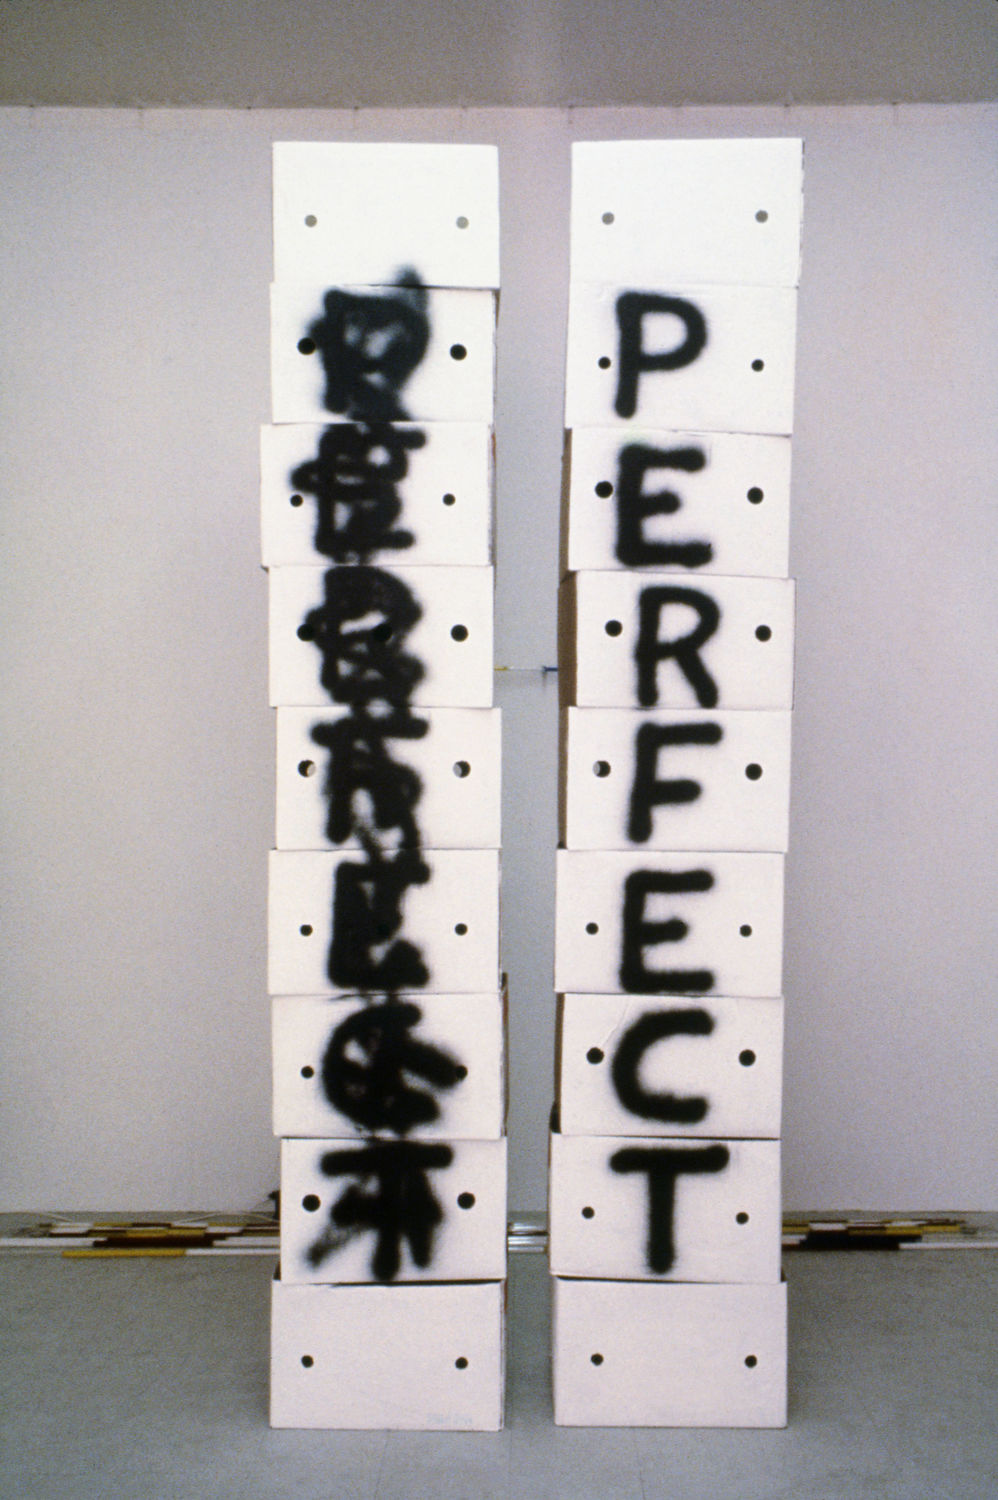 Allen Ruppersberg, Perfect, 1970. Paint on cardboard boxes. Courtesy the artist.